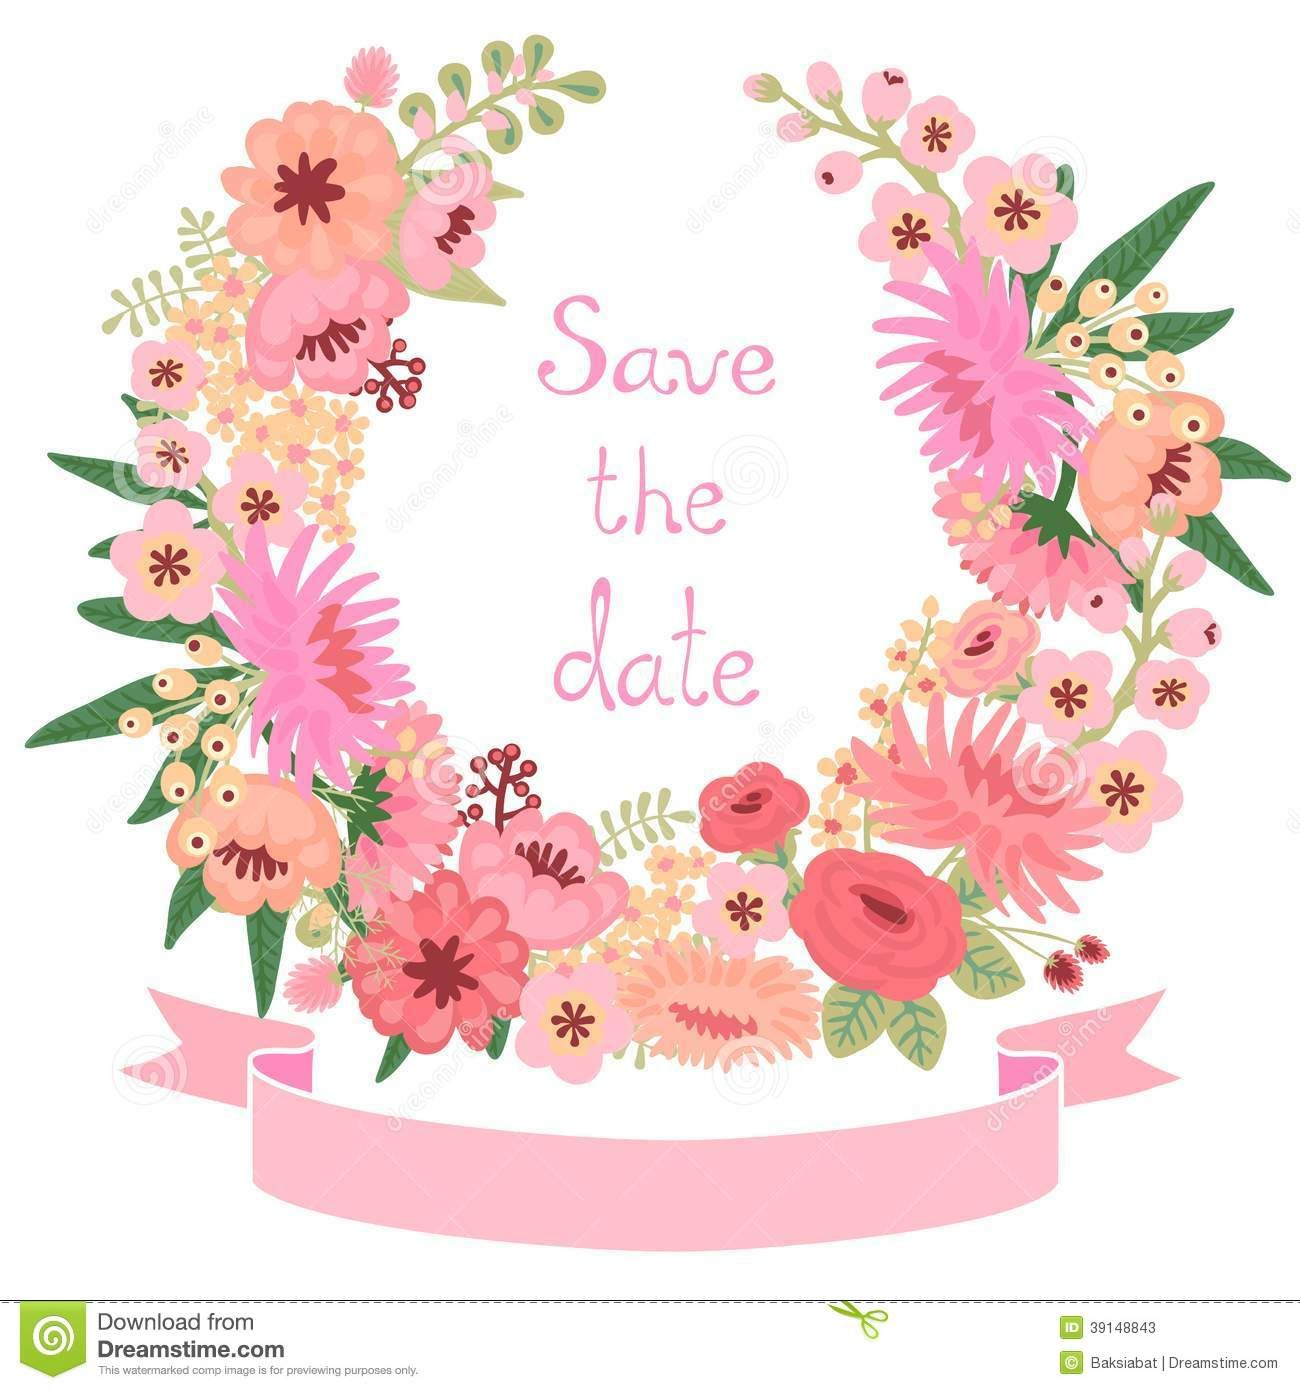 Vintage Card With Floral Wreath Save The Date Vector Image On VectorStock